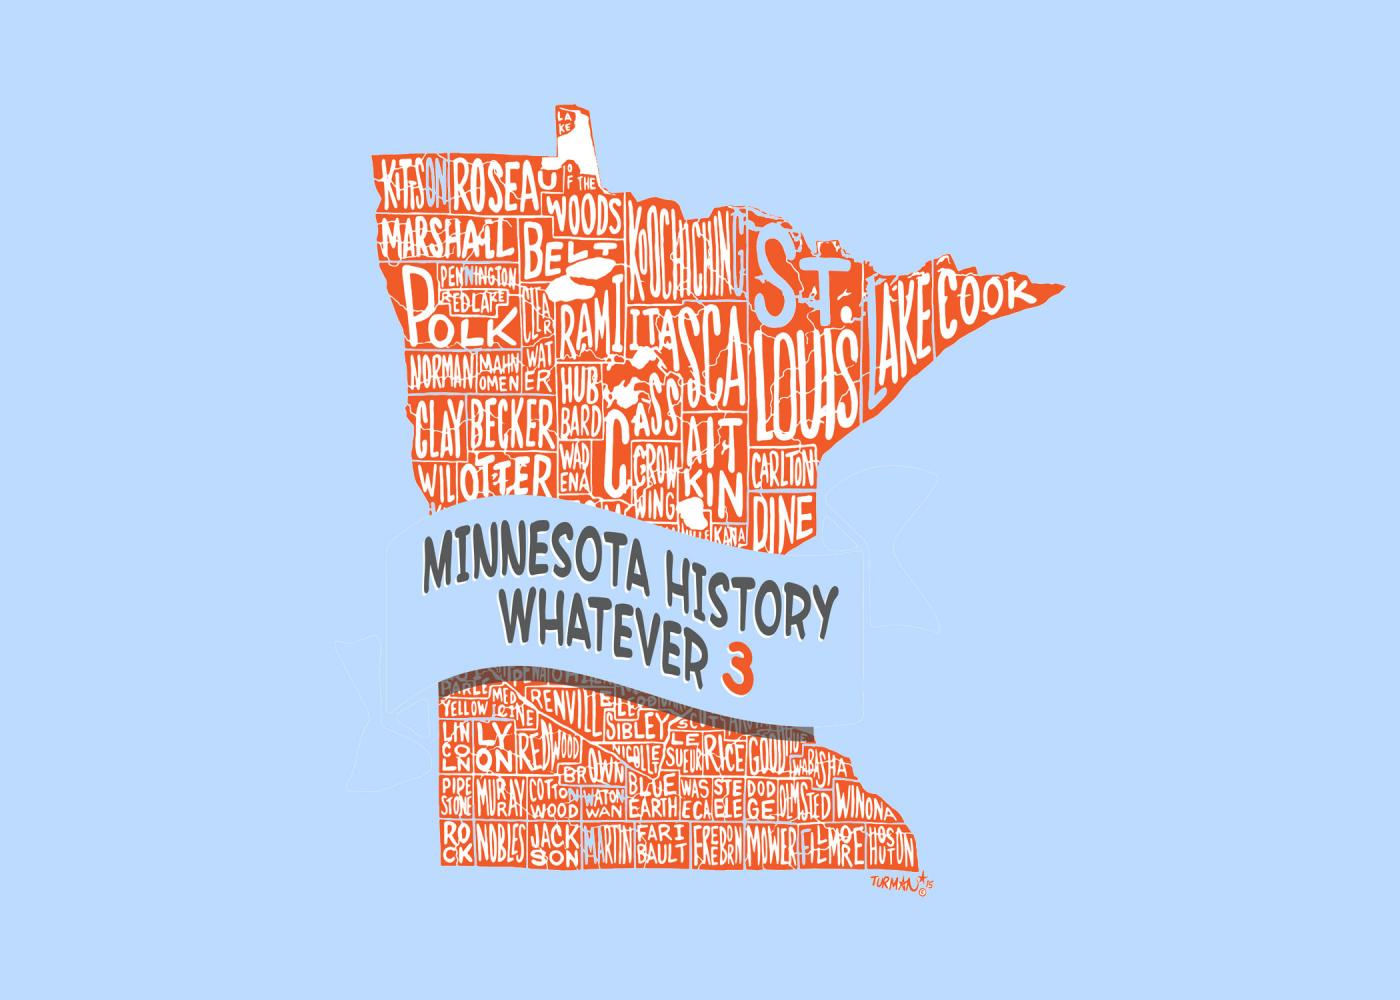 Minnesota History Whatever.